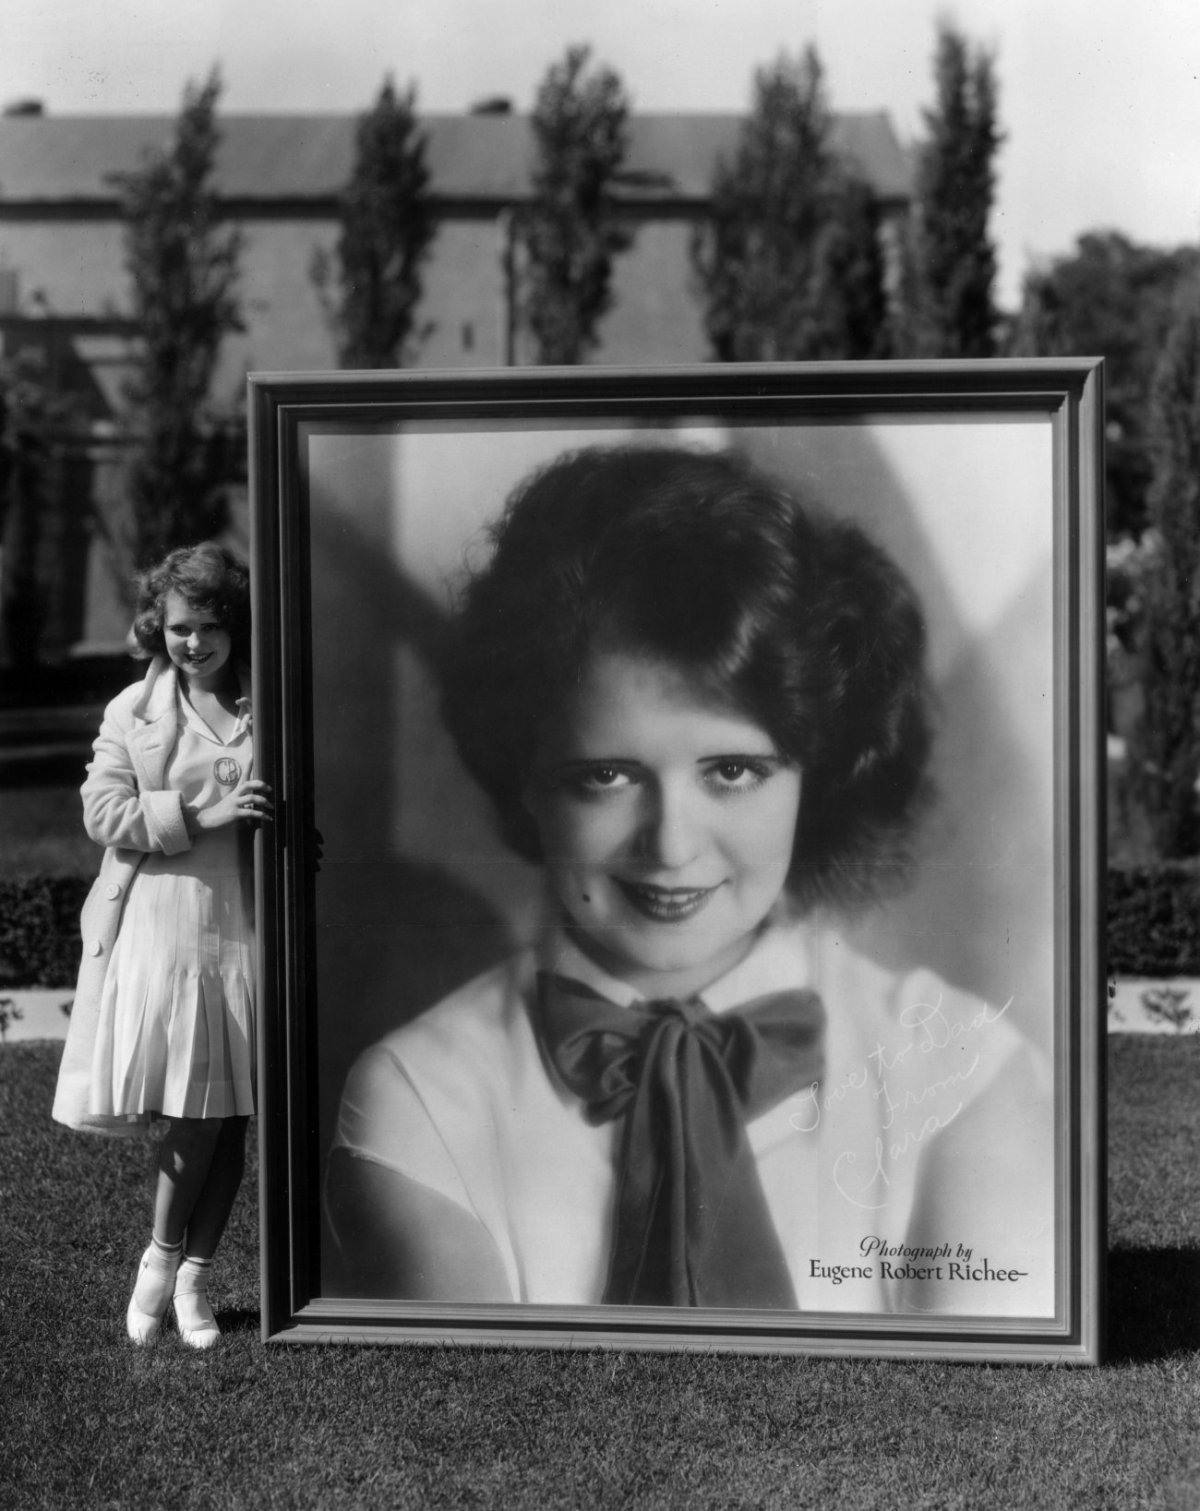 http://verdoux.files.wordpress.com/2008/03/clara-bow-two.jpg?w=1200